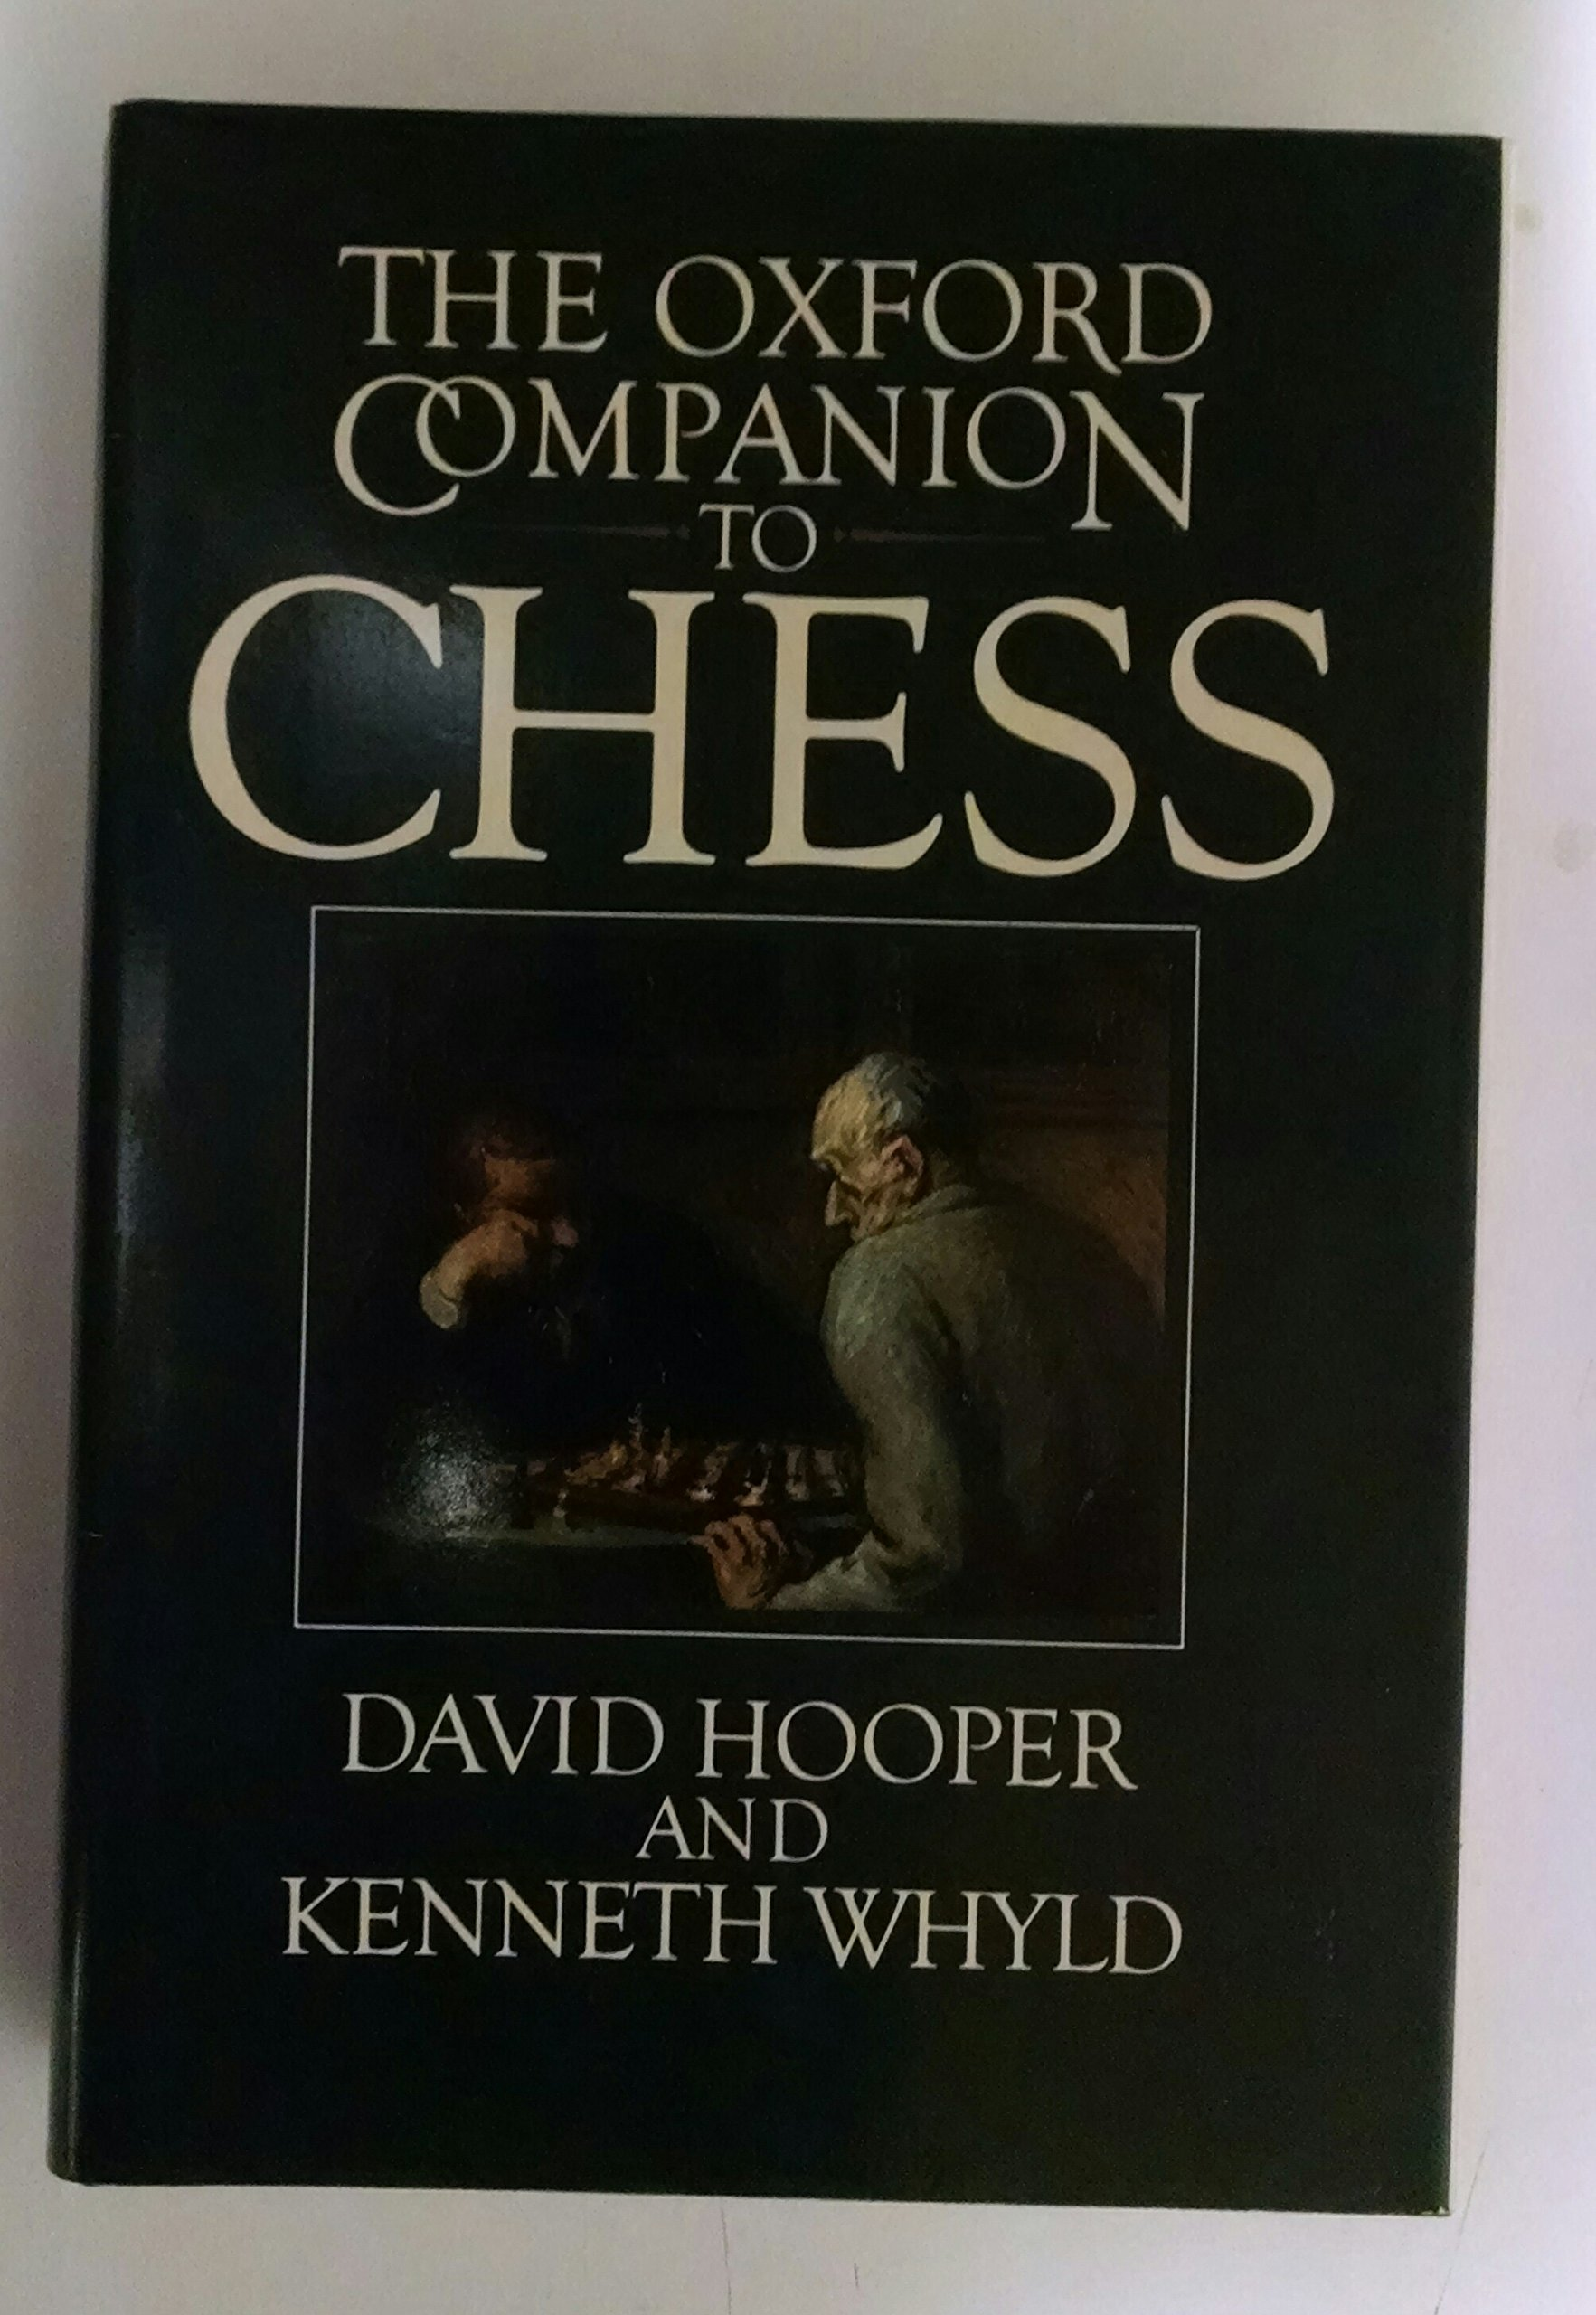 The Oxford Companion to Chess (2nd ed.), Oxford University Press, ISBN 0-19-280049-3